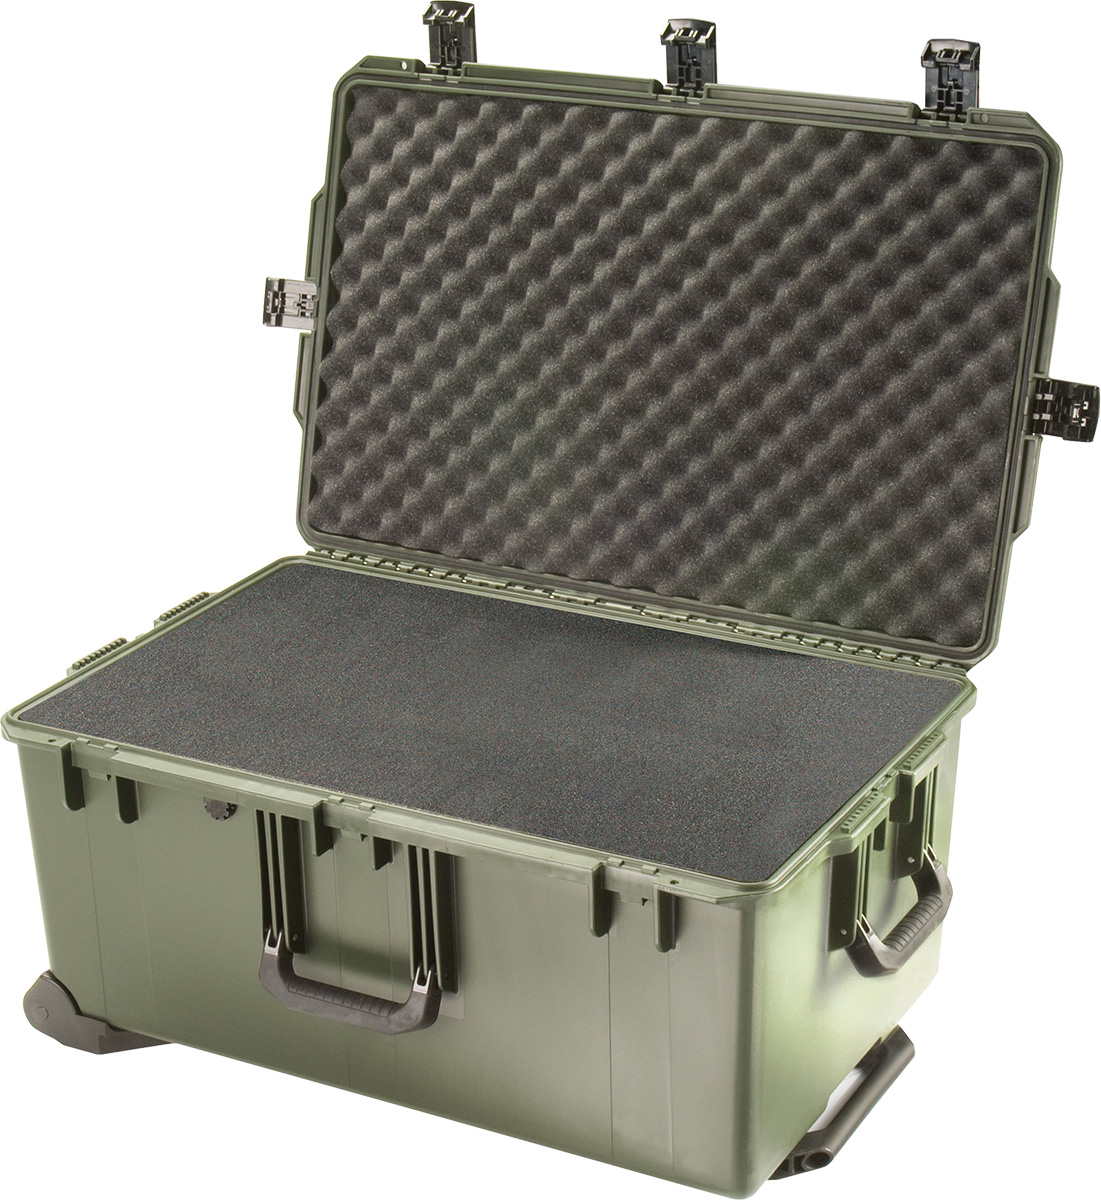 pelican im2975 green foam waterproof case